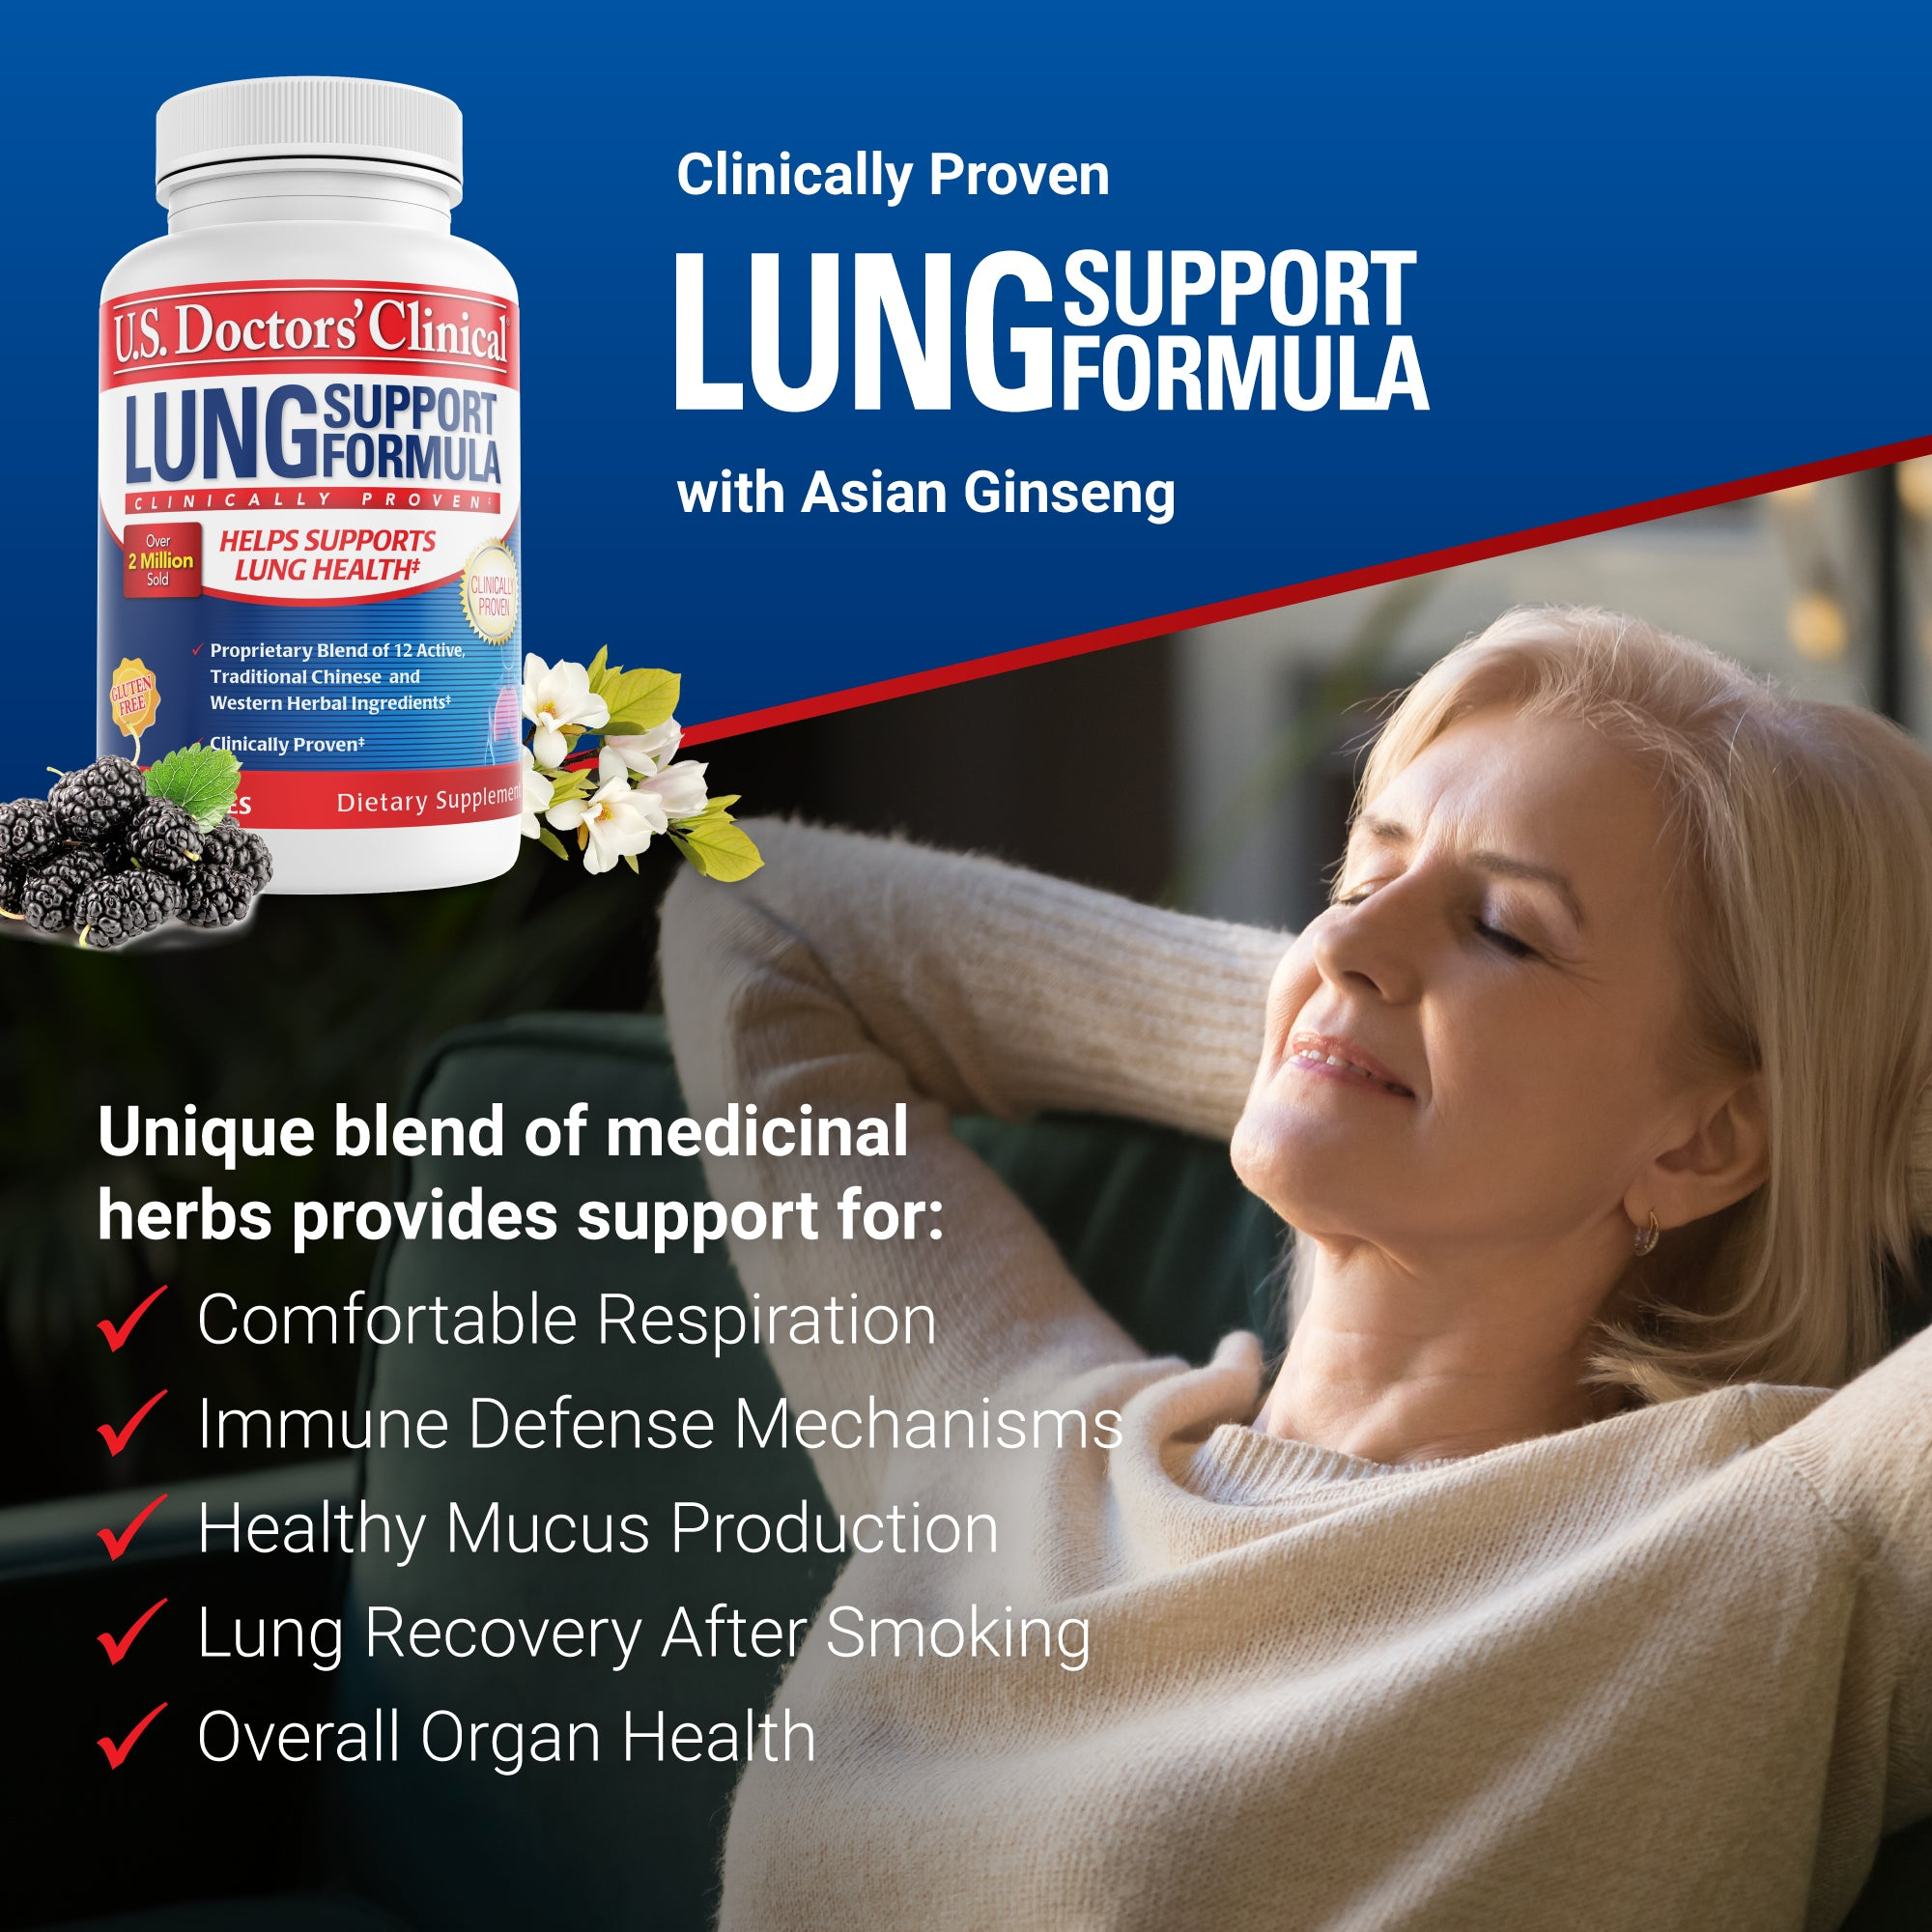 Lung Support - Clinical Respiratory Support